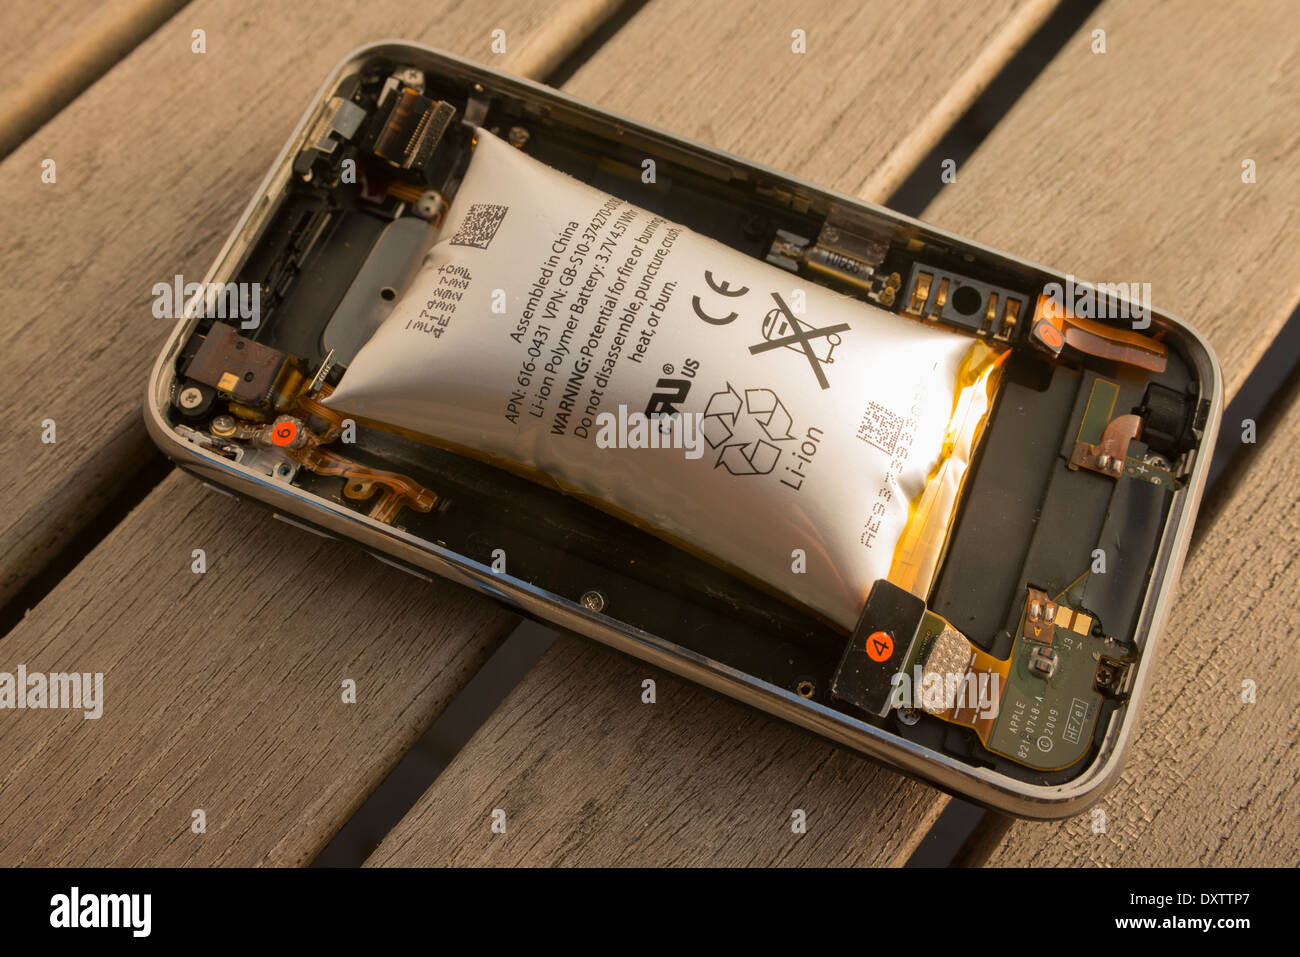 Modern cellphone having suffered from damage due to Lithium Ion battery swelling - Stock Image